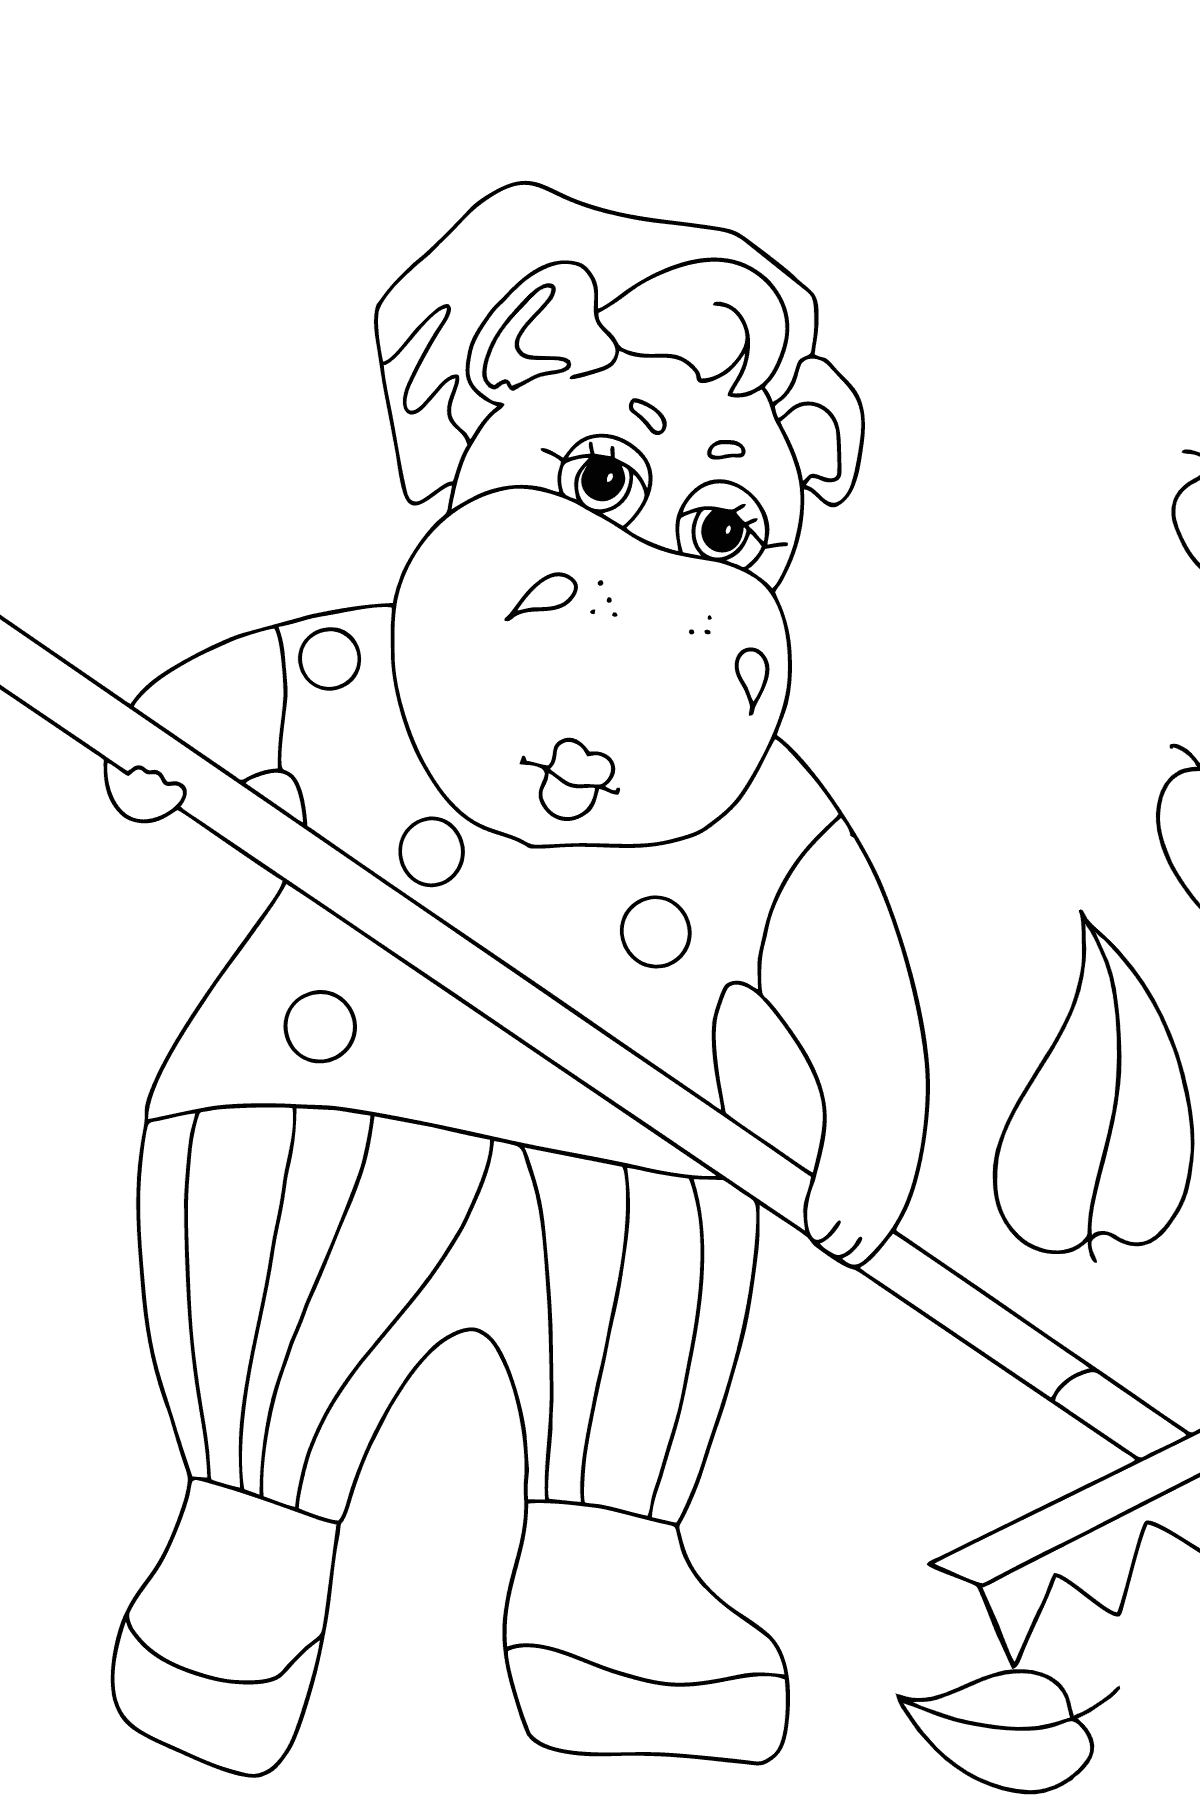 Coloring Page - A Hippo is Sweeping Autumn Leaves for Children